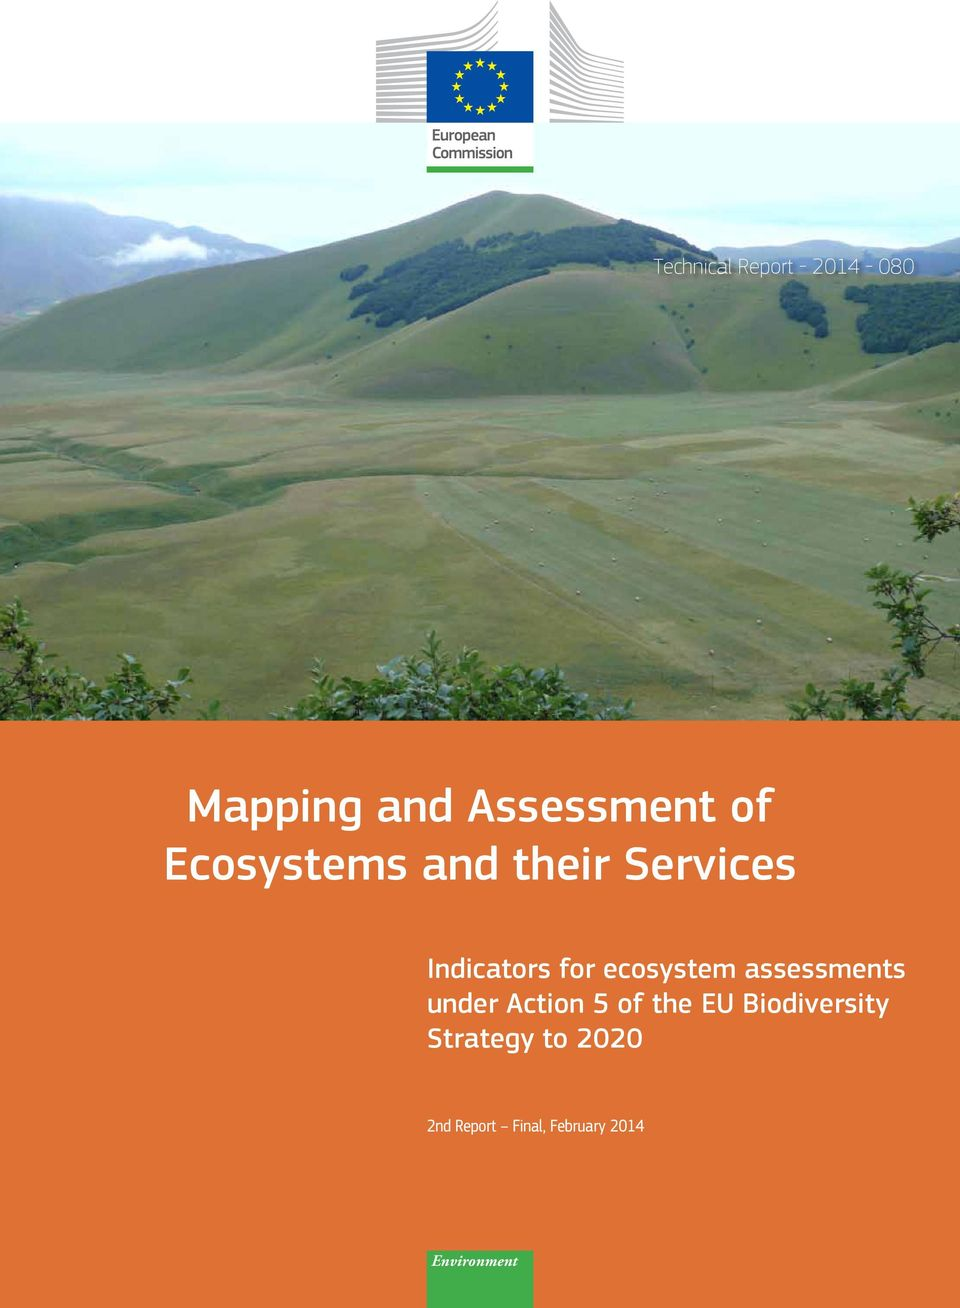 assessments under Action 5 of the EU Biodiversity